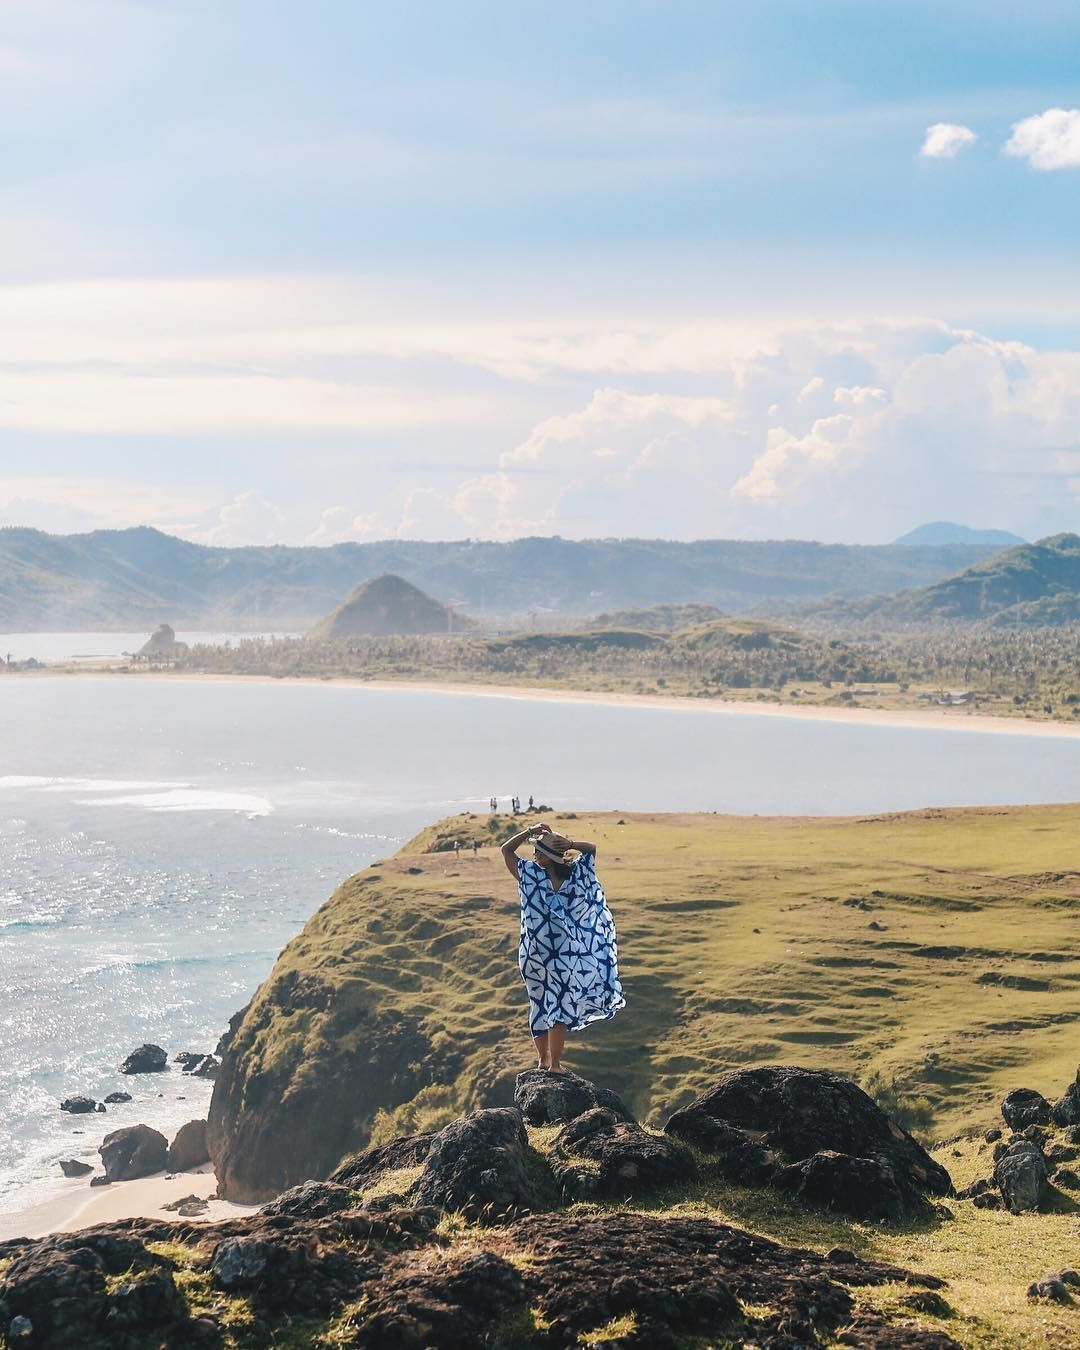 I really love places that make you realise how tiny and your problems are. : Bukit meresse #lombok  I really love places that make you realise how tiny and your problems are. : Bukit meresse #lombok . . . . . #surfers #surf #surfing #surfer #waves #surfinglife #beach #surfboard #ocean #surflife #surfphotography #sea #surfline #surftrip #surfgirl #travel #surfersparadise #wave #nature #photography #vscocam #surfboards #beachlife #longboard #surfstyle #explorelombok #sunset #pesonaindonesia #bhfyp